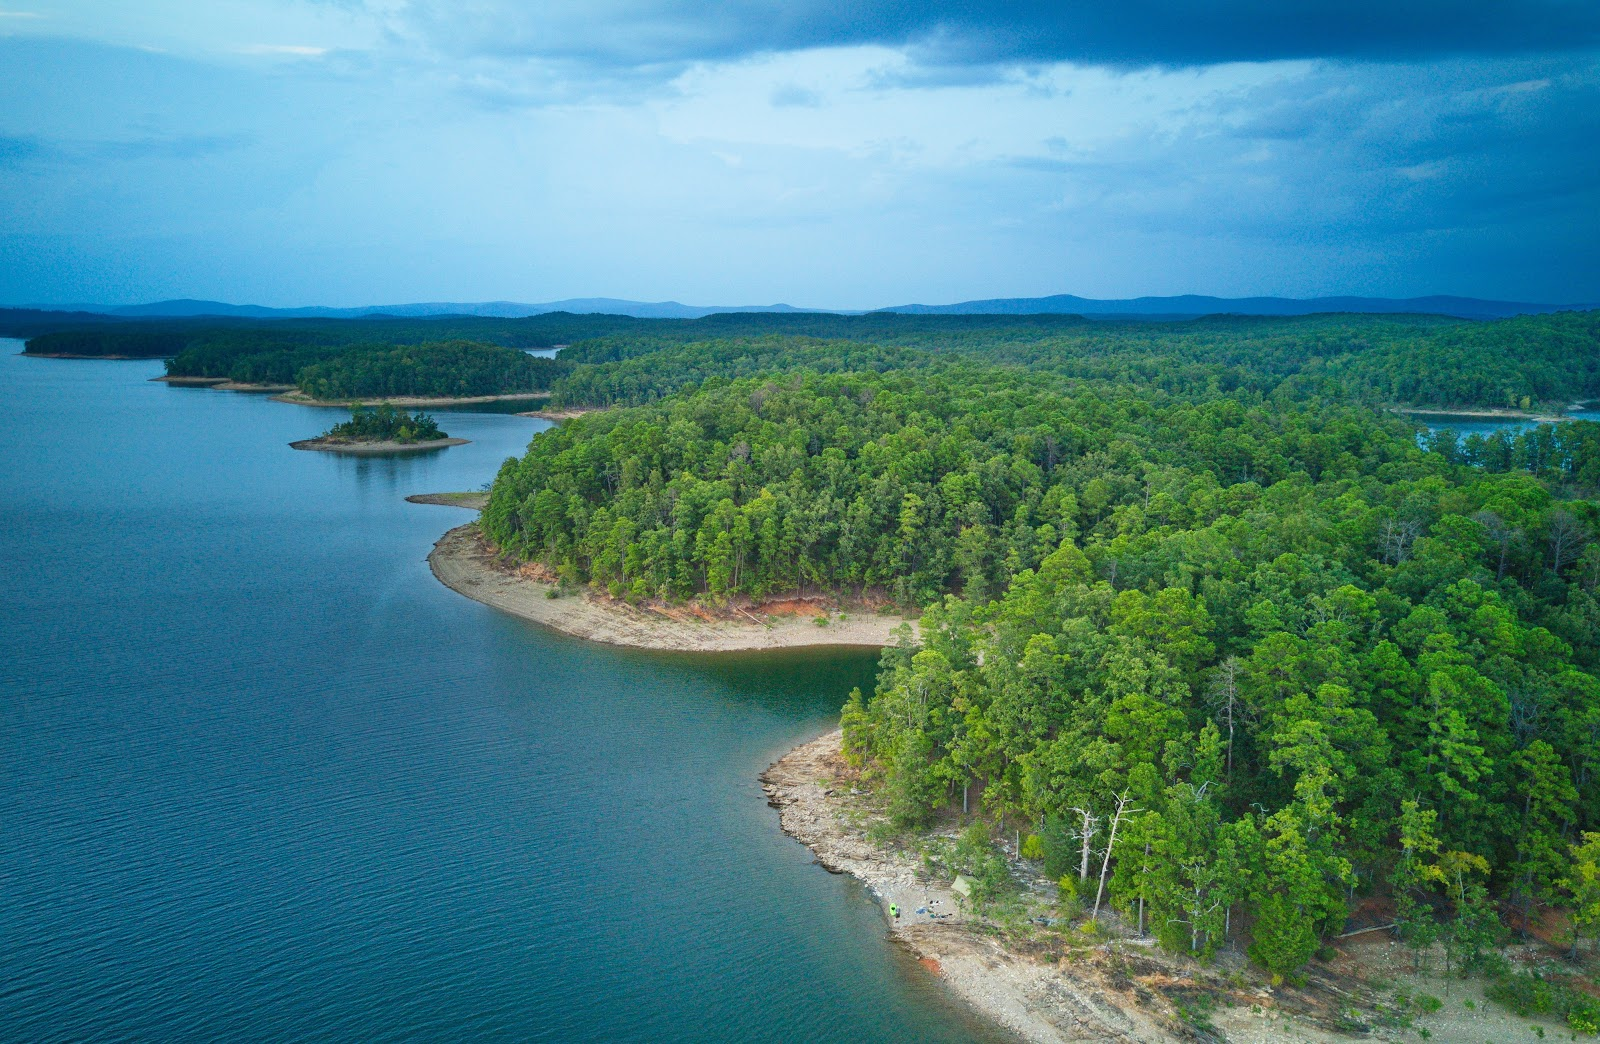 Vacation Home Rentals in Lake Ouachita